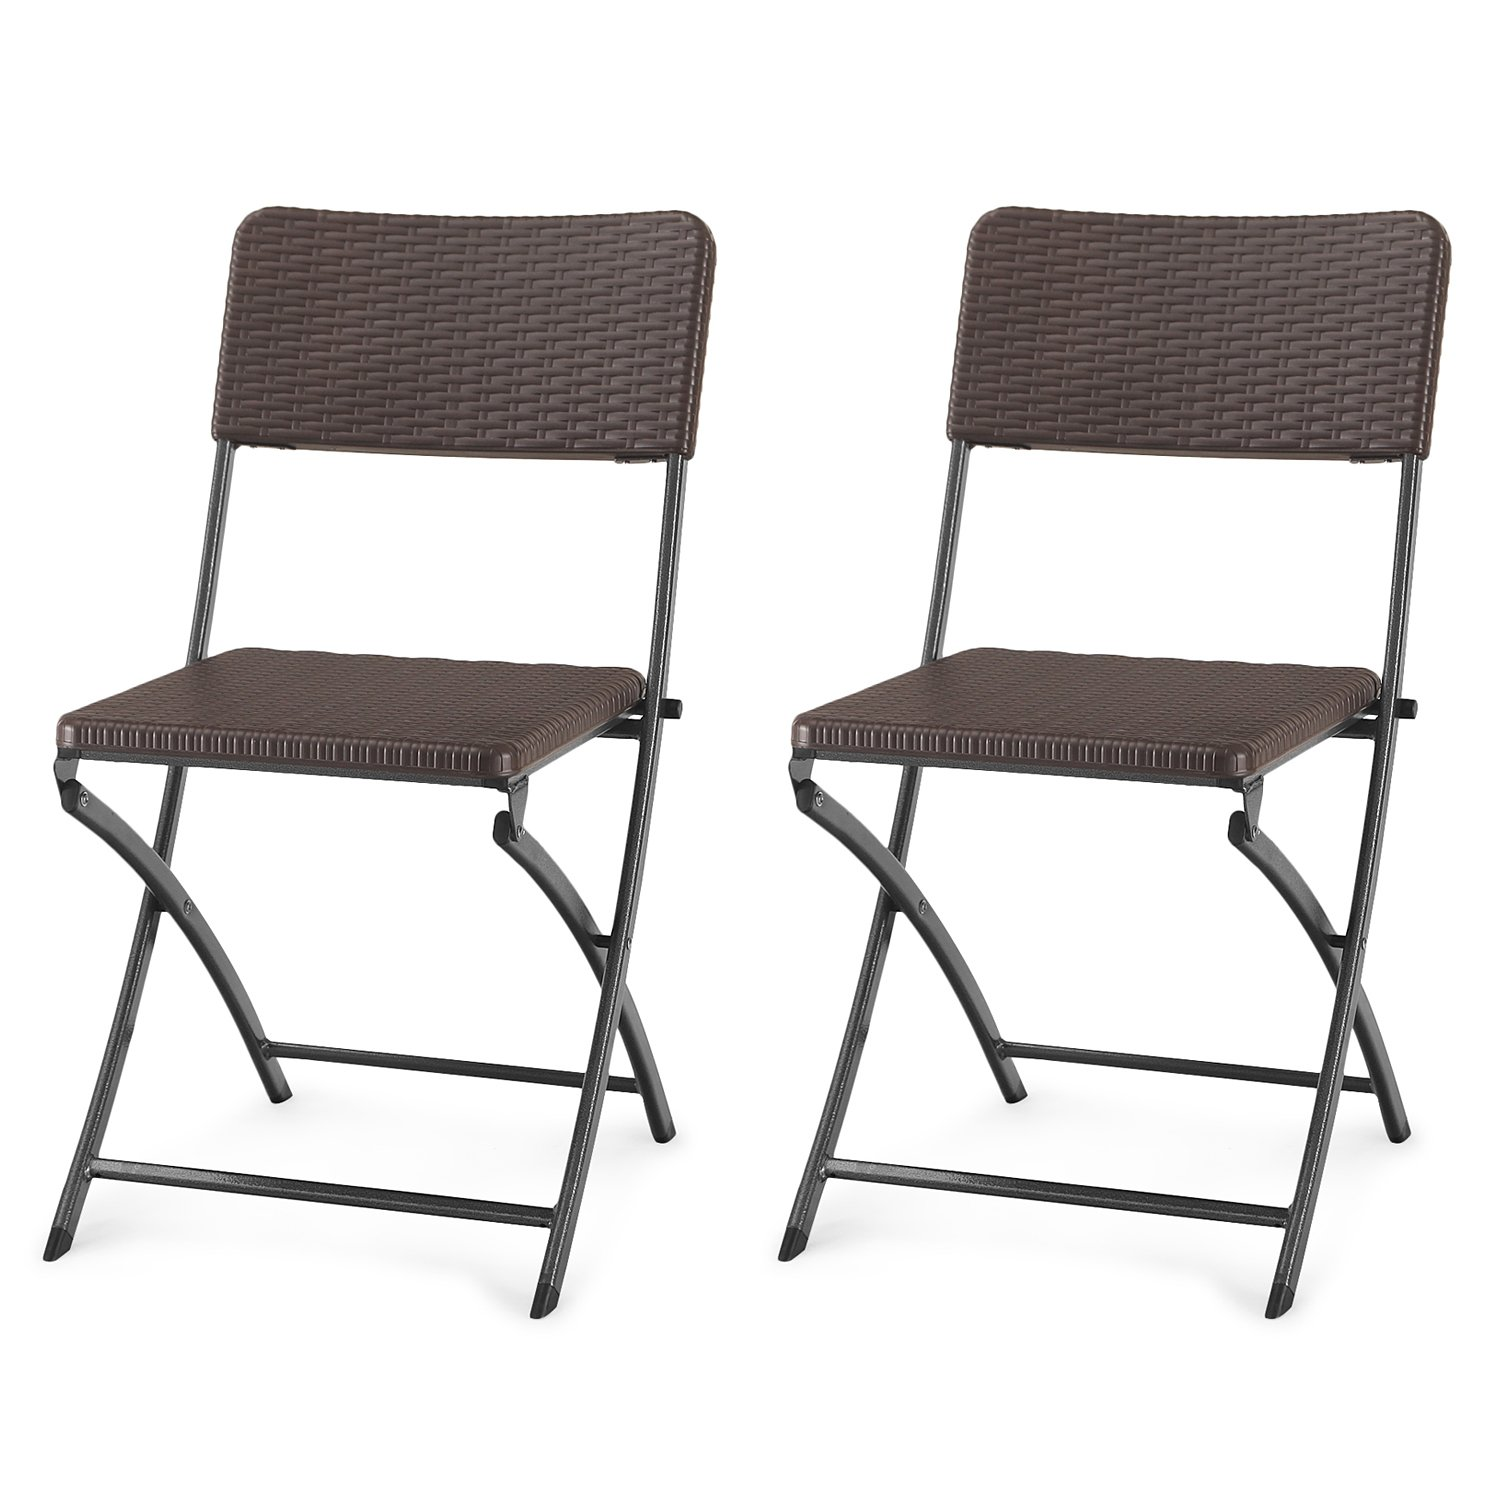 Adeco Folding Bistro-Style Patio Rattan Chairs Brown, Set Of 2